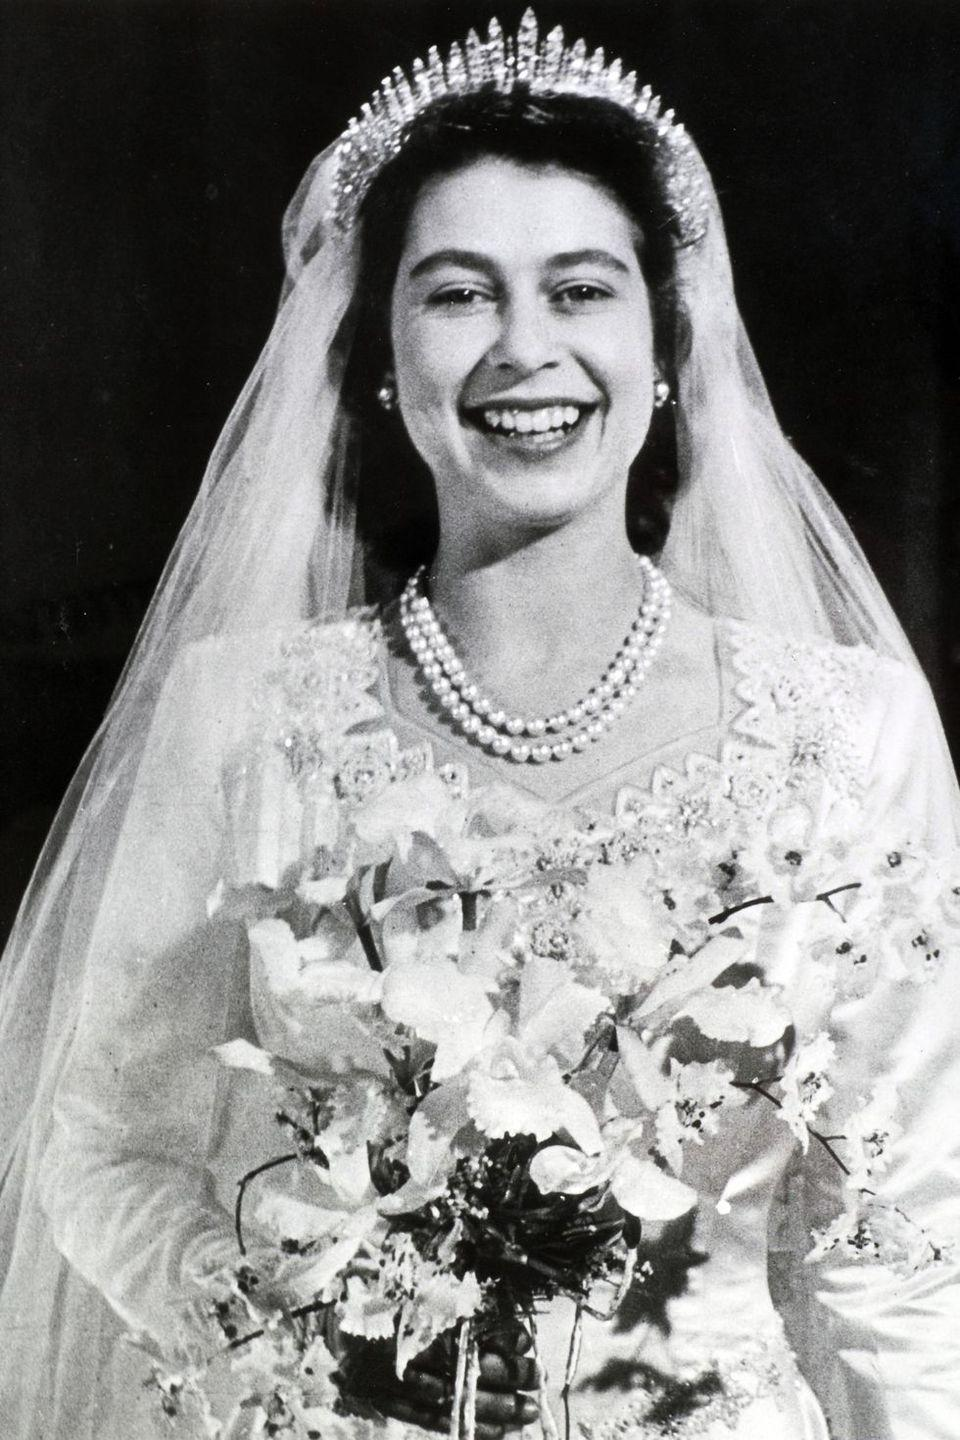 "<p><strong>Wedding date: </strong>November 20, 1947</p><p><strong>Wedding tiara: </strong>Queen Elizabeth wore Queen Mary's Russian Fringe tiara on her wedding day. The piece of jewelry was made for Queen Mary, the grandmother of Queen Elizabeth, in 1919 and can be worn as a necklace or atop the head. <a href=""https://www.townandcountrymag.com/leisure/arts-and-culture/news/a8451/queen-elizabeth-prince-philip-wedding/"" rel=""nofollow noopener"" target=""_blank"" data-ylk=""slk:Elizabeth's tiara famously broke on her wedding day,"" class=""link rapid-noclick-resp"">Elizabeth's tiara famously broke on her wedding day,</a> but was quickly repaired. </p>"